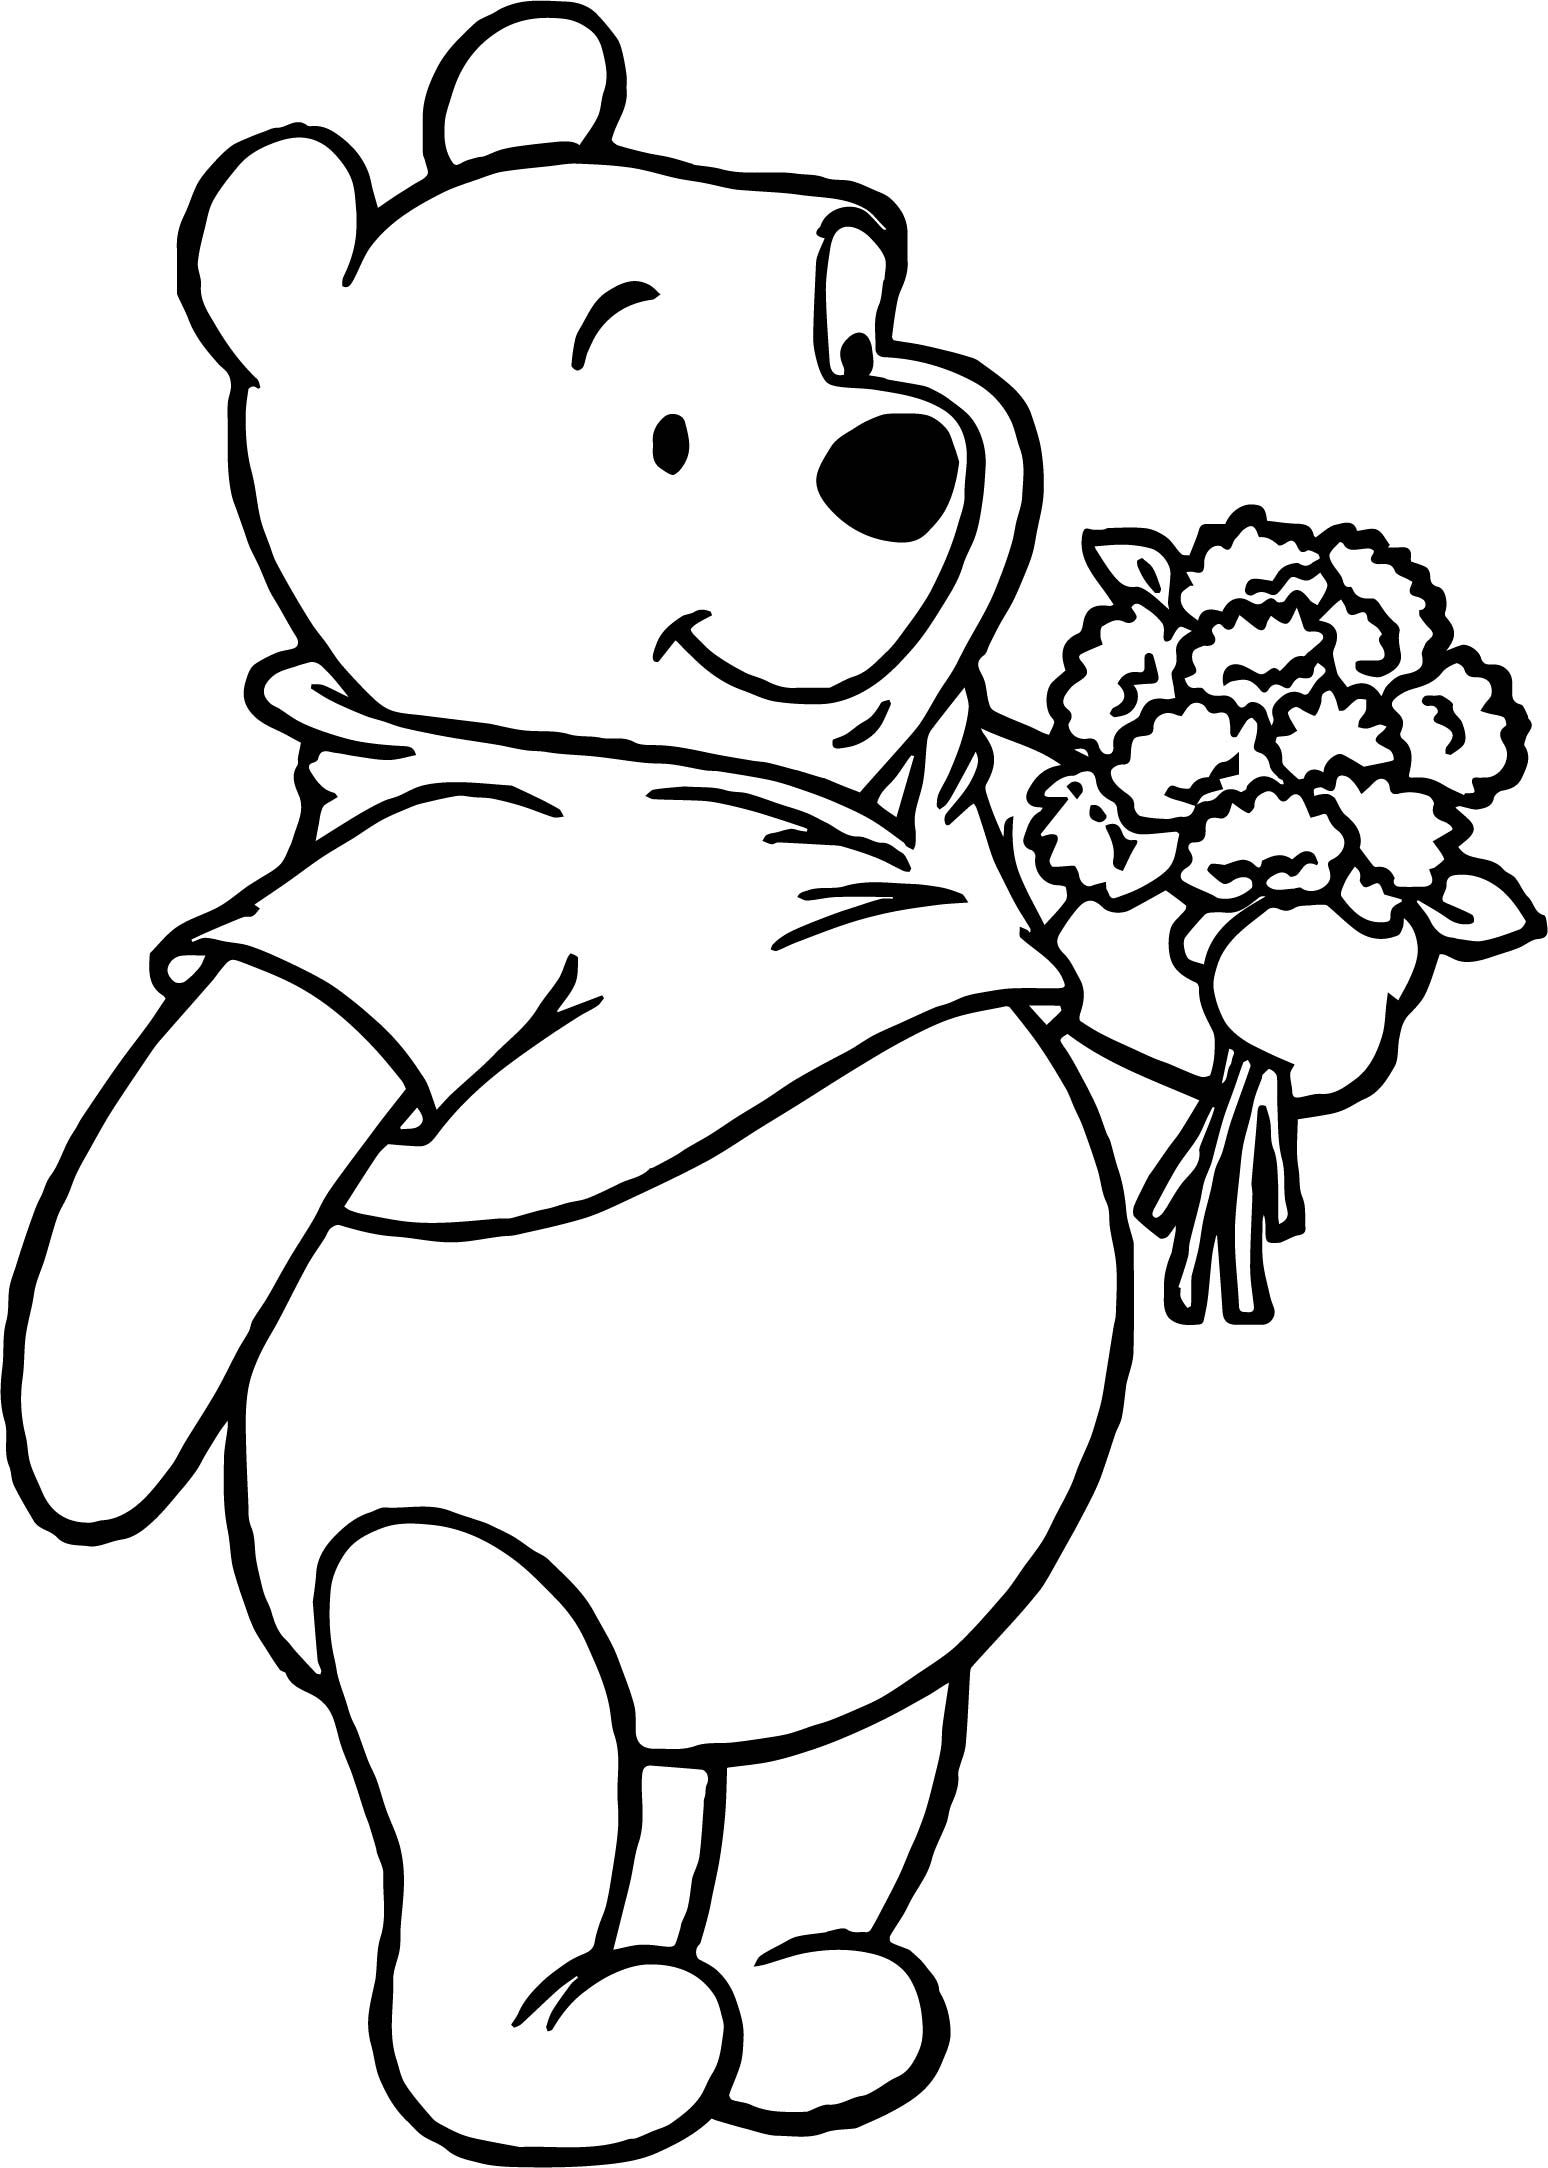 pooh bear coloring pictures winnie the pooh coloring pages with images bear bear pictures coloring pooh